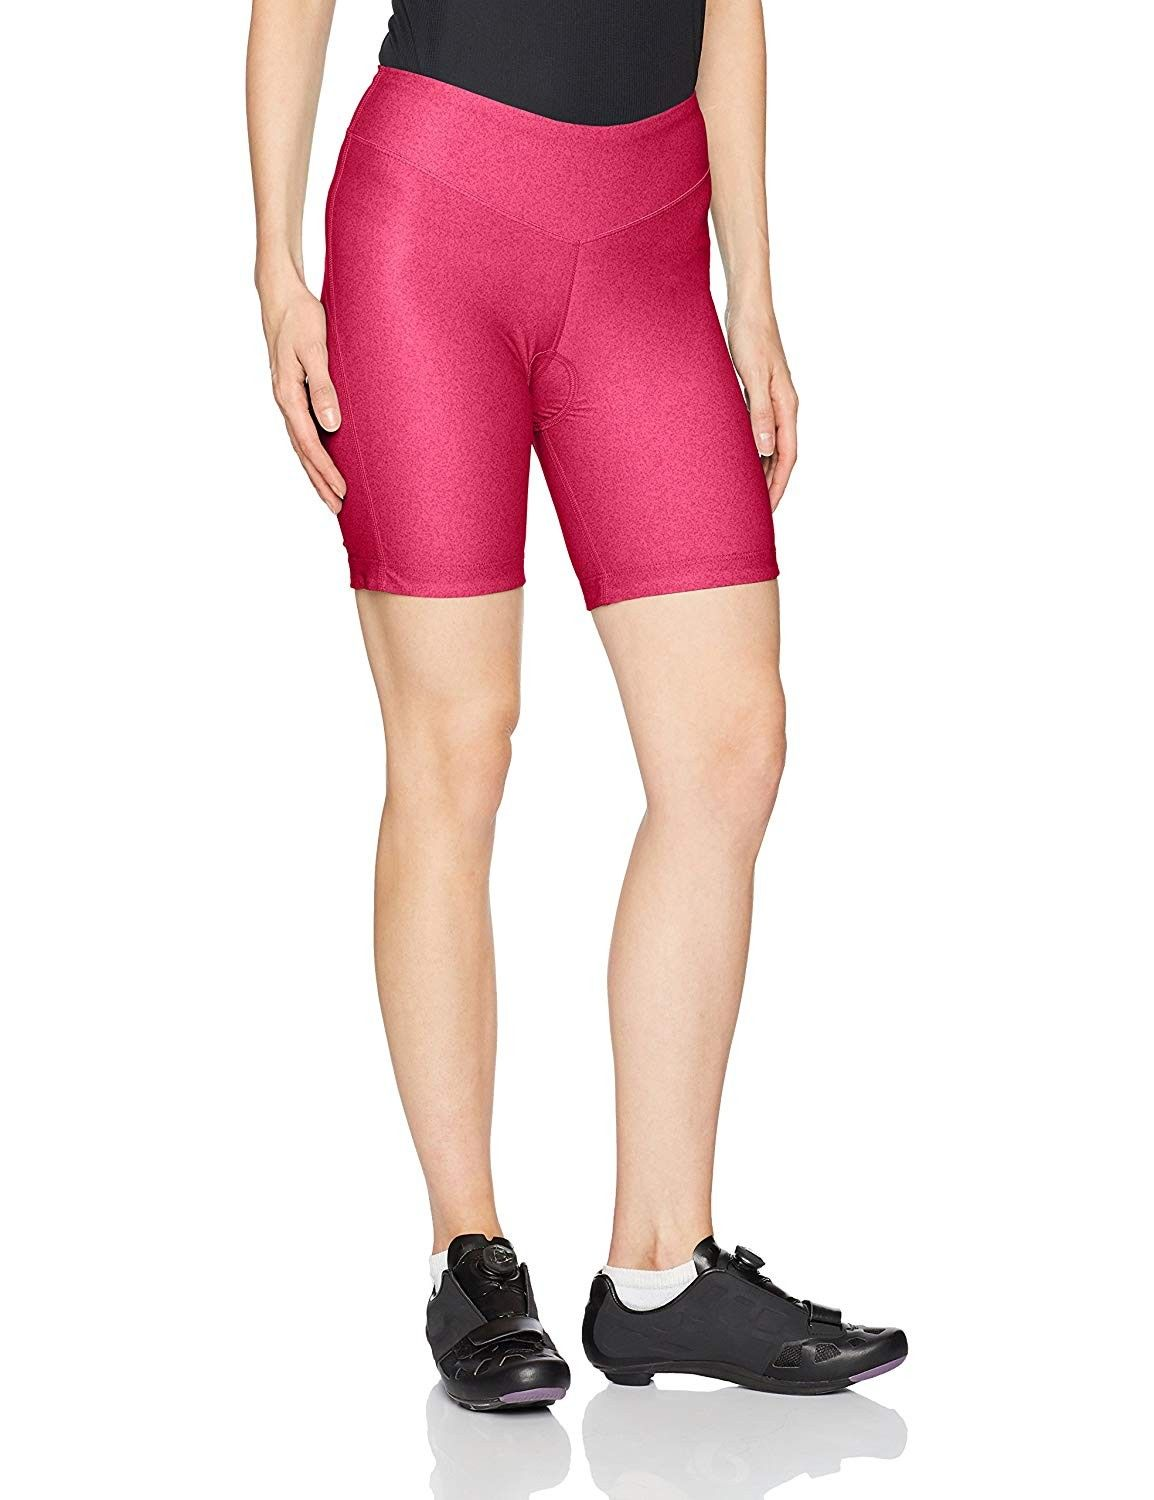 Static Shorts - Panther Pink - CL12OBSZX1M - Sports & Fitness Clothing, Women, Shorts, Compression S...